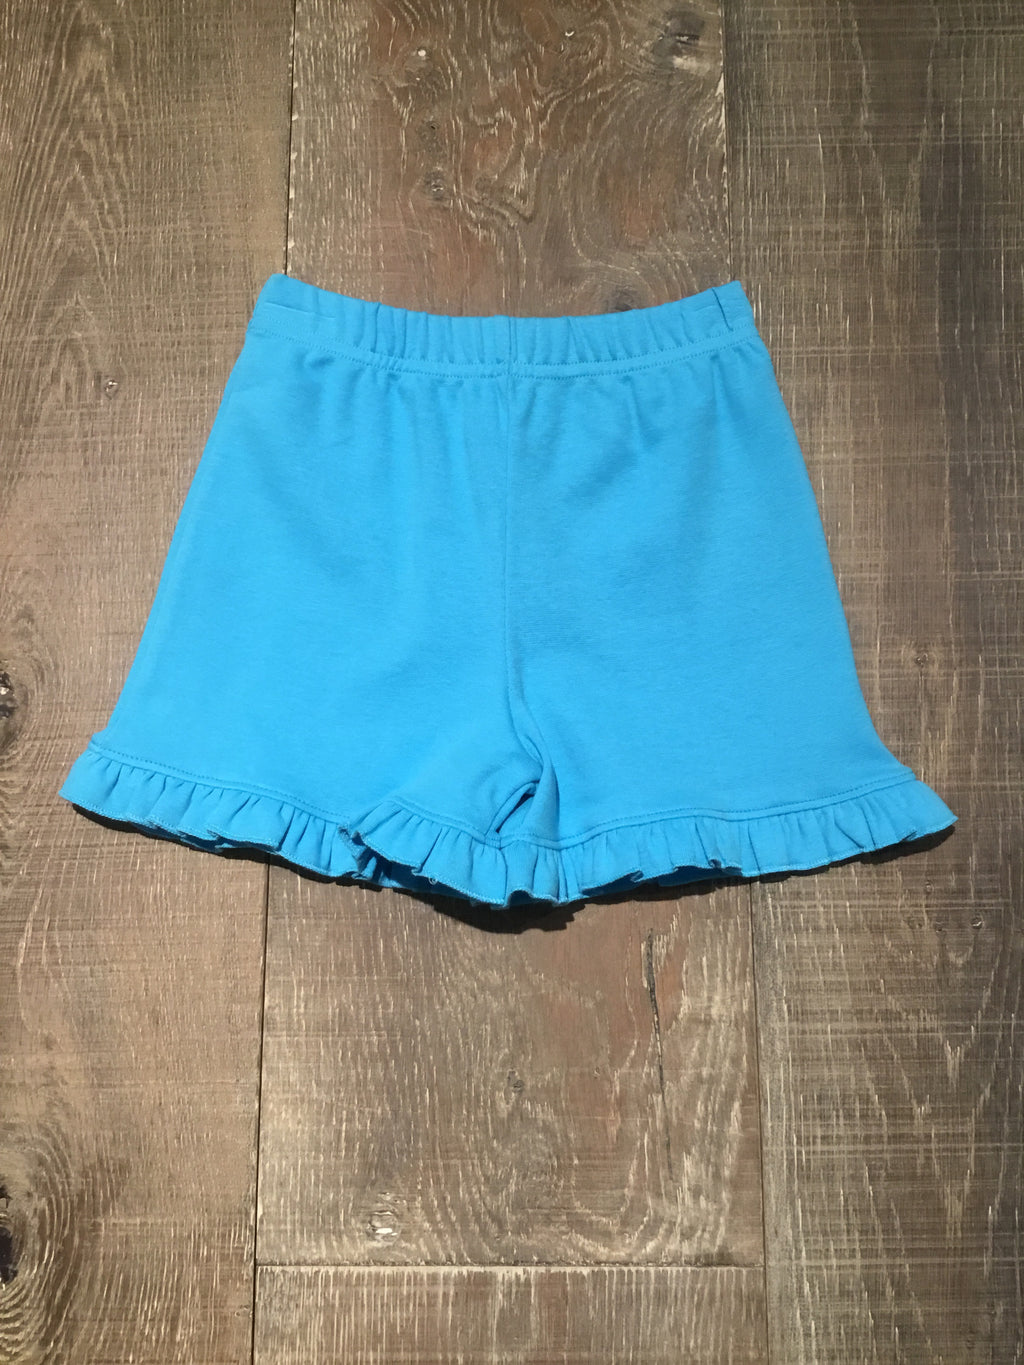 Turquoise Ruffle Edge Shorts by Luigi Kids